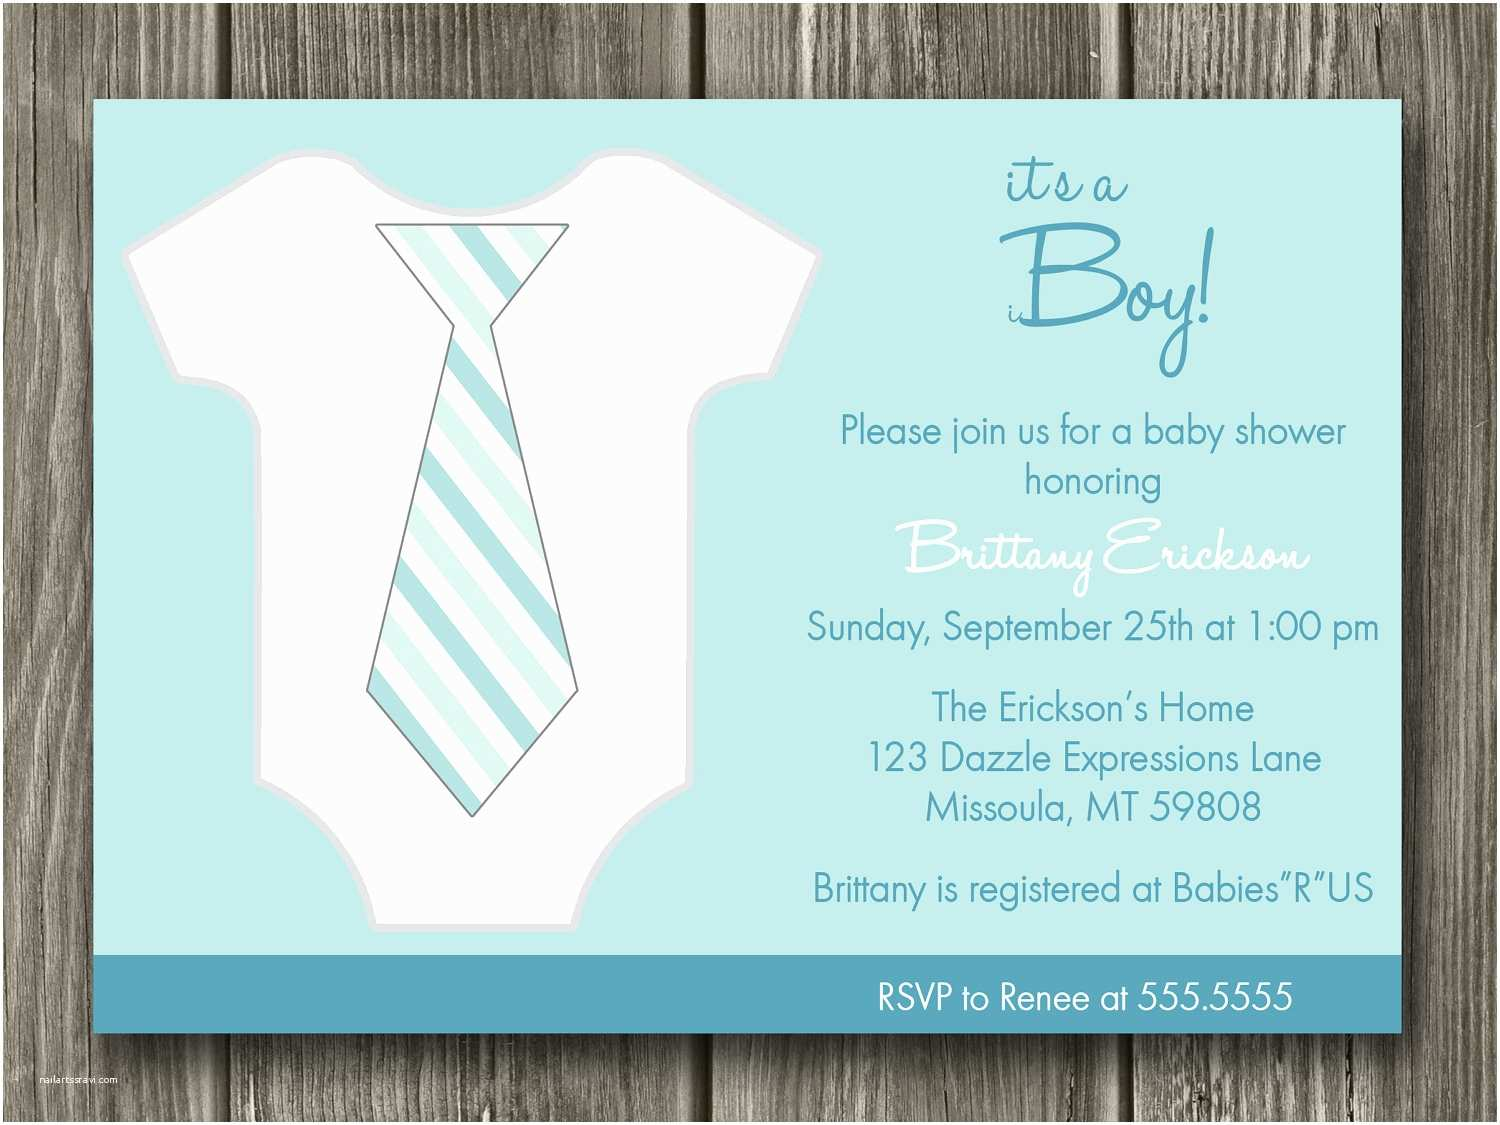 Michaels Printable Wedding Invitations Baby Shower Invitations Michaels Various Invitation Card